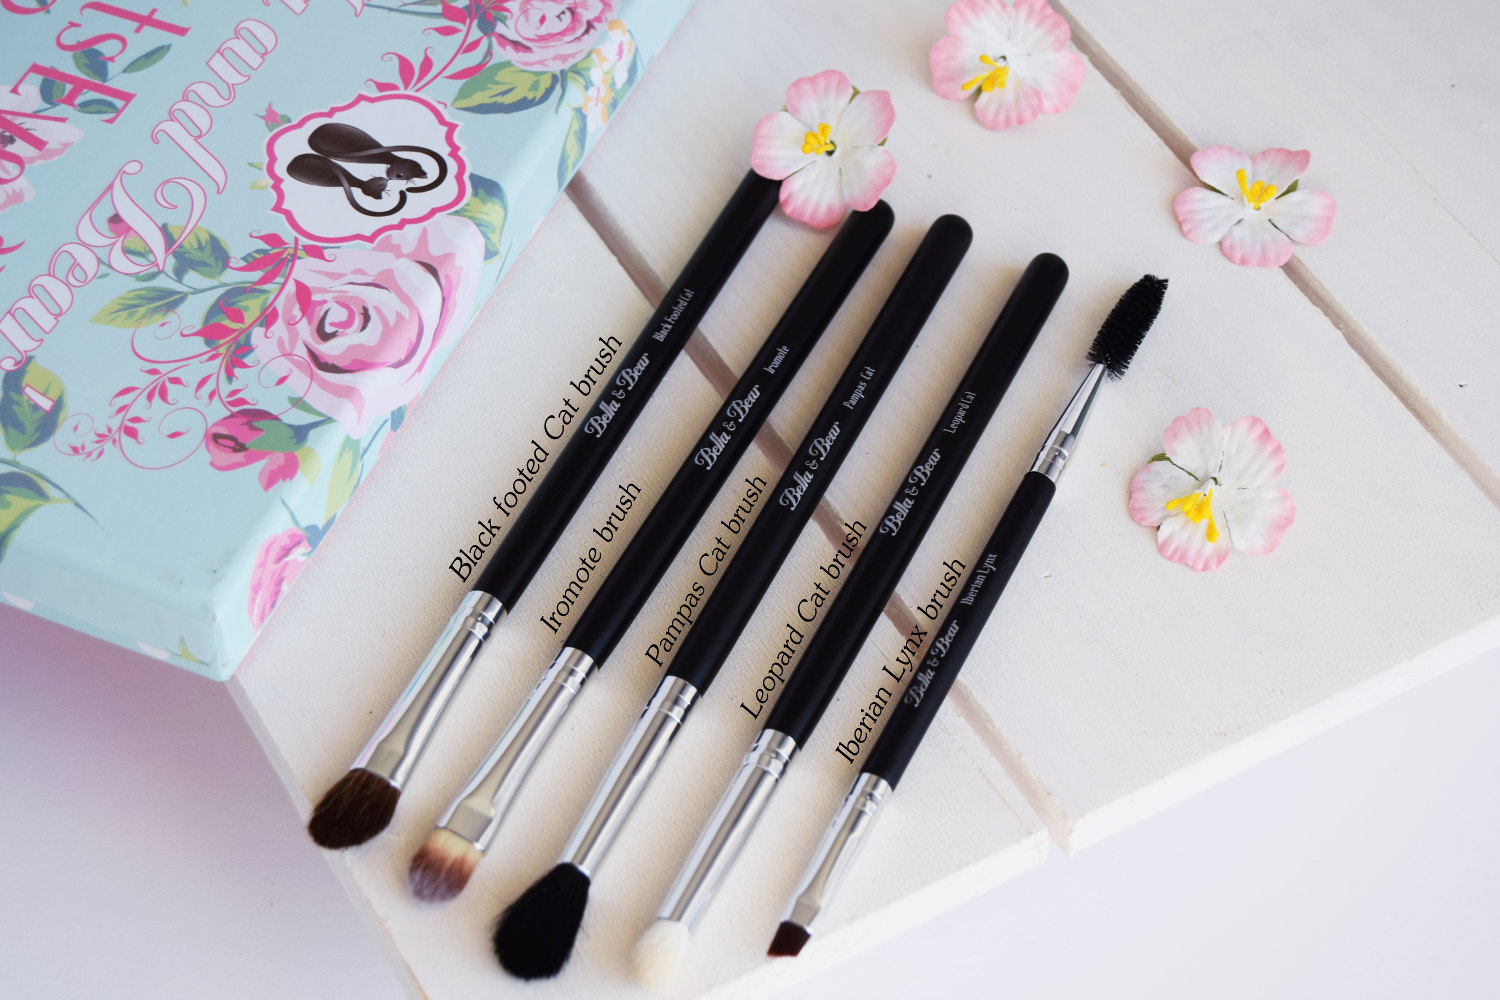 bella_and_bears_cats_eyes_eye_brush_set_zalabell_beauty_review_6